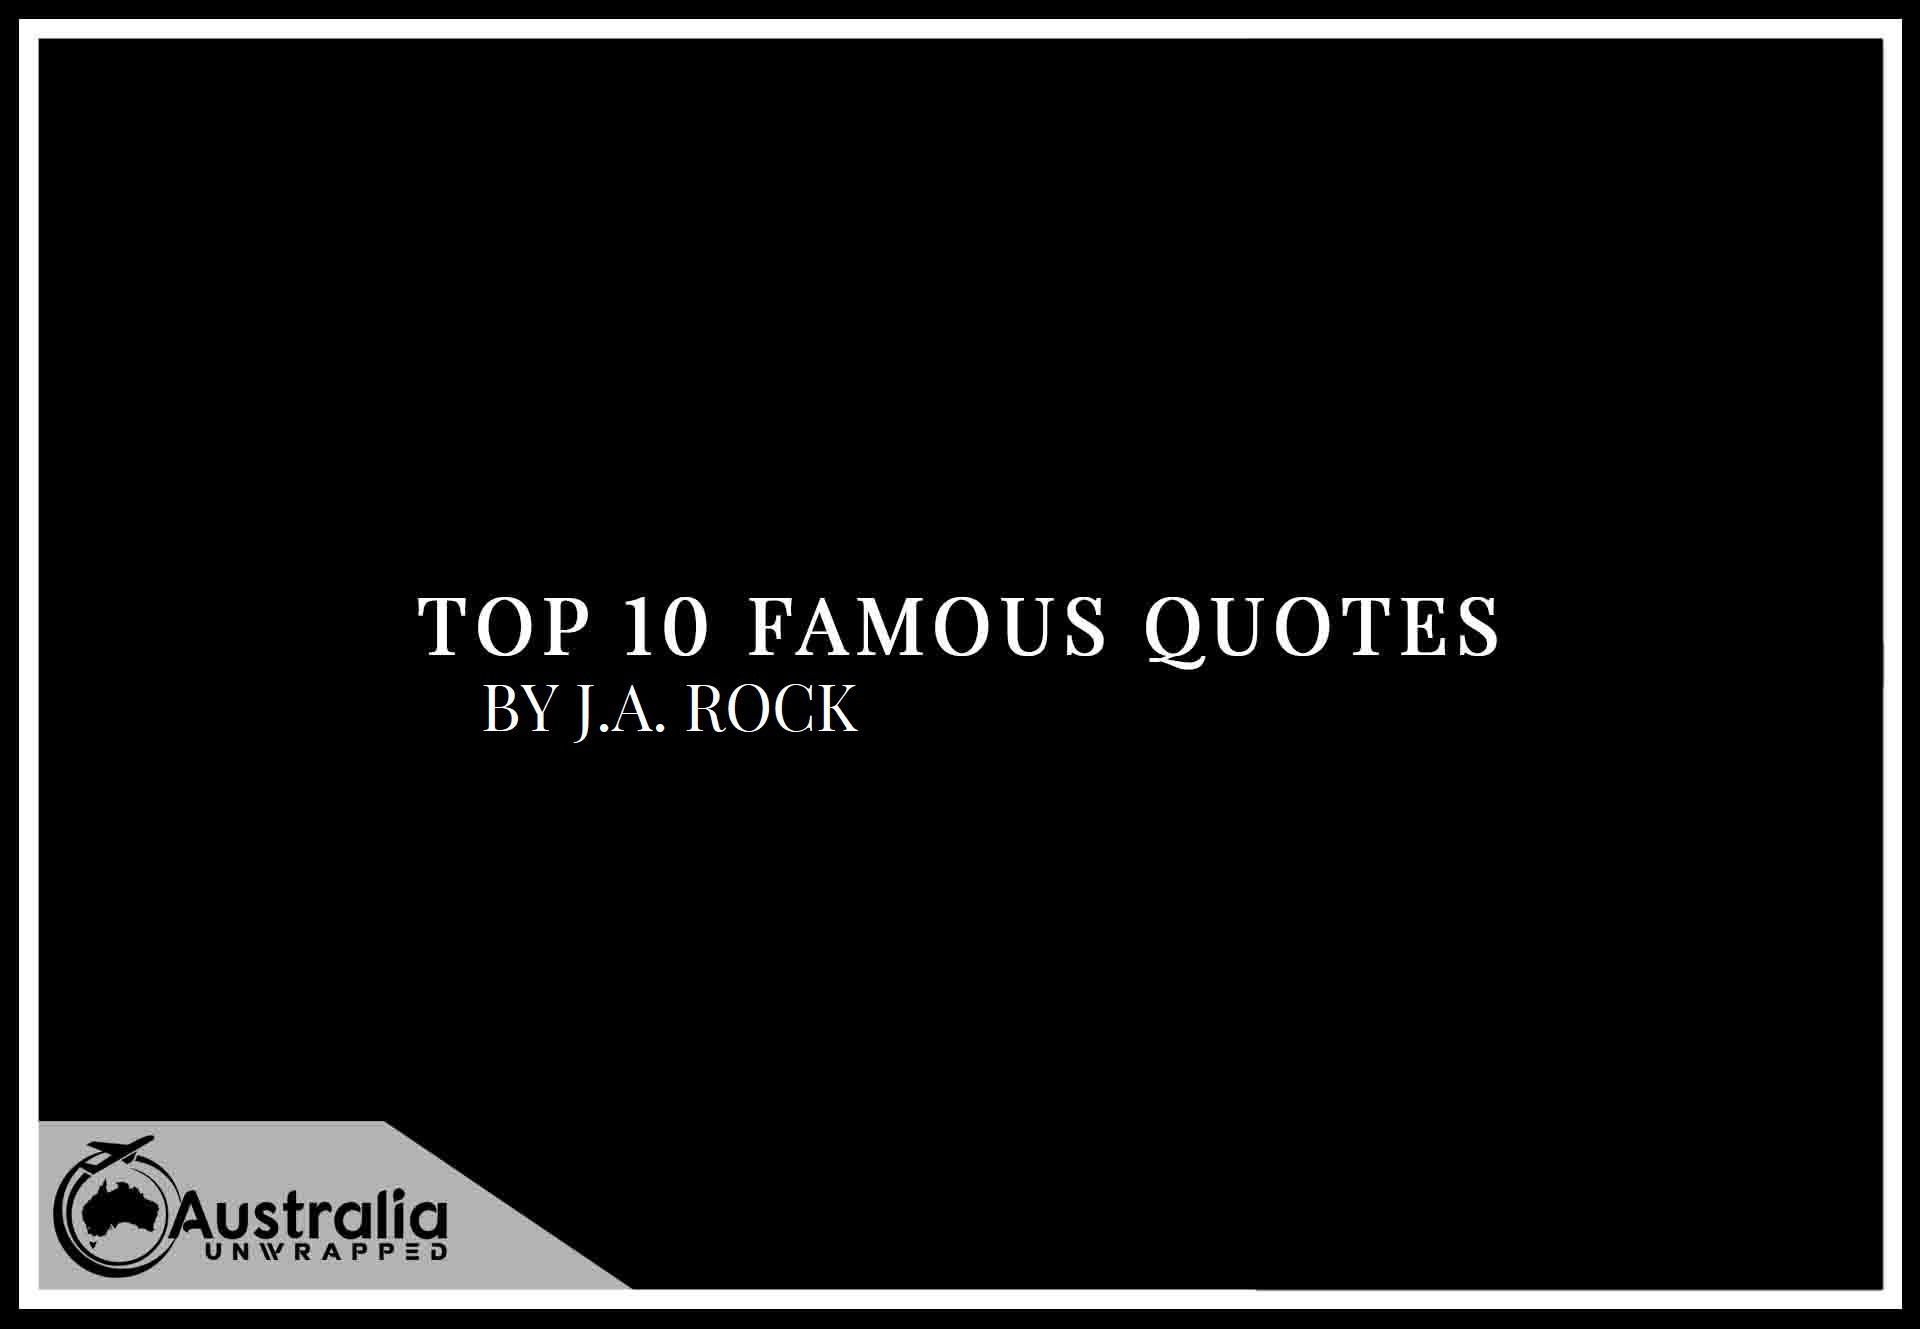 Top 10 Famous Quotes by Author J.A. Rock